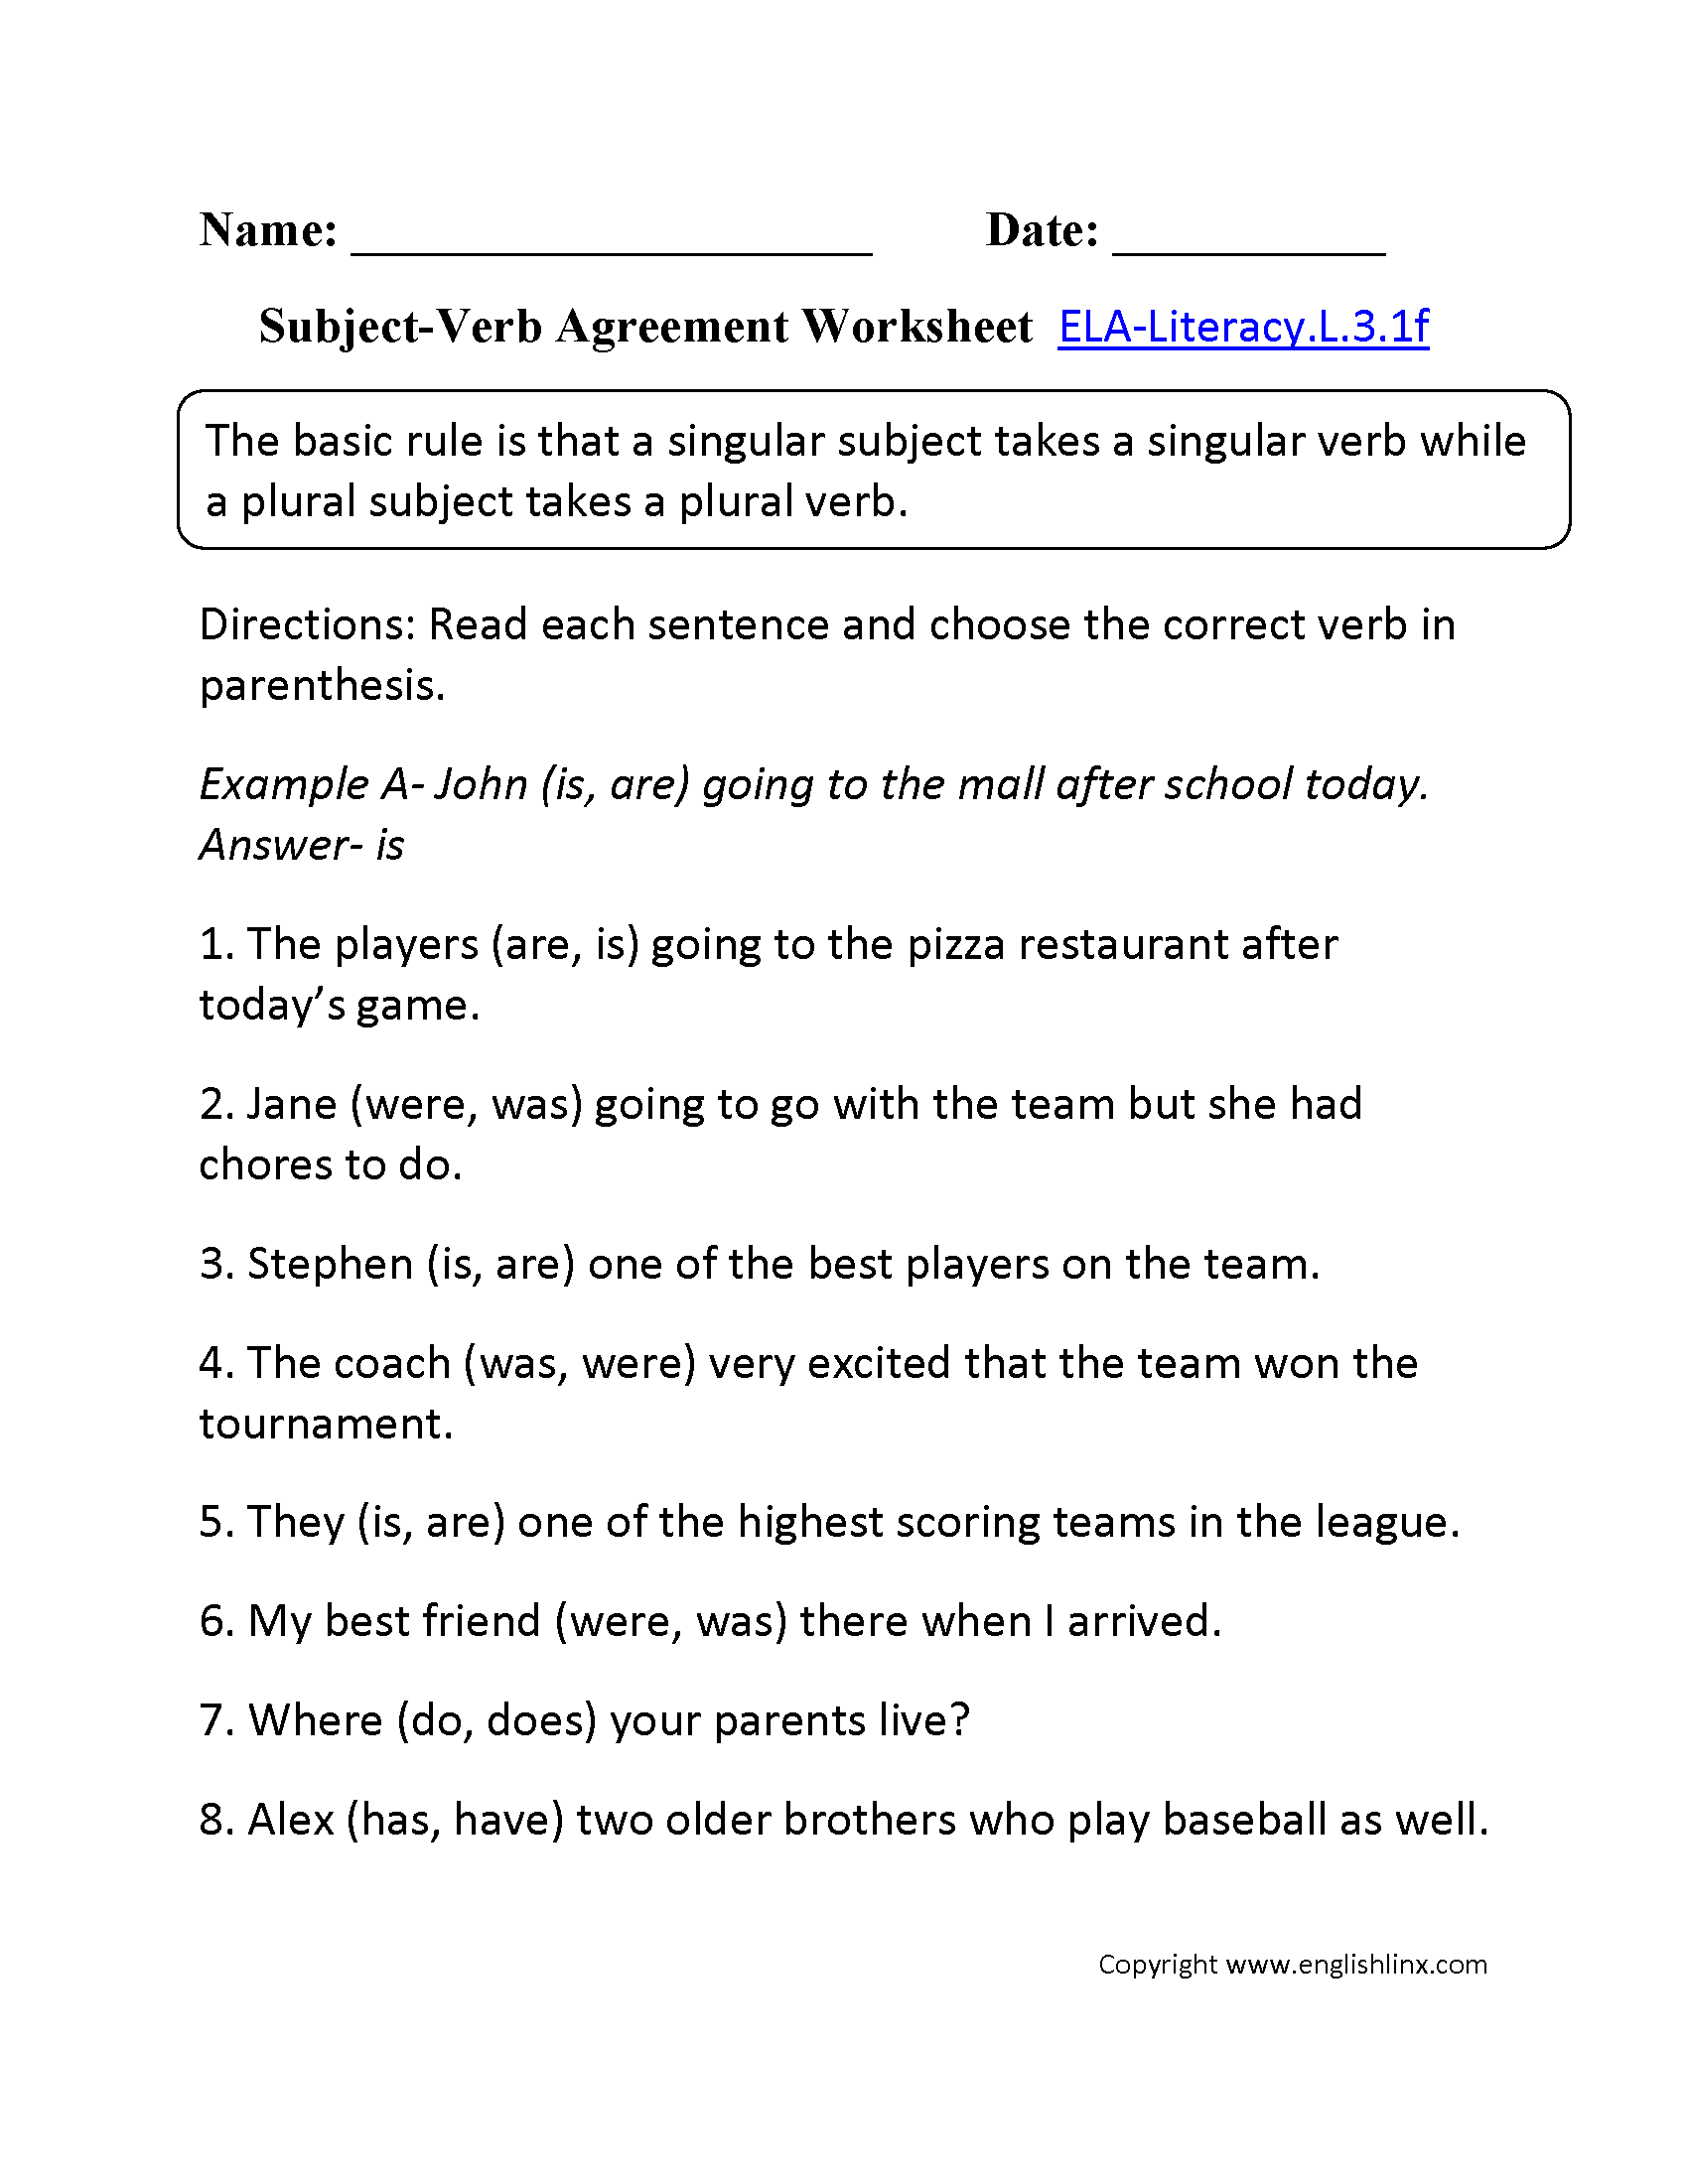 Subject Verb Agreement Worksheet 2 L 3 1